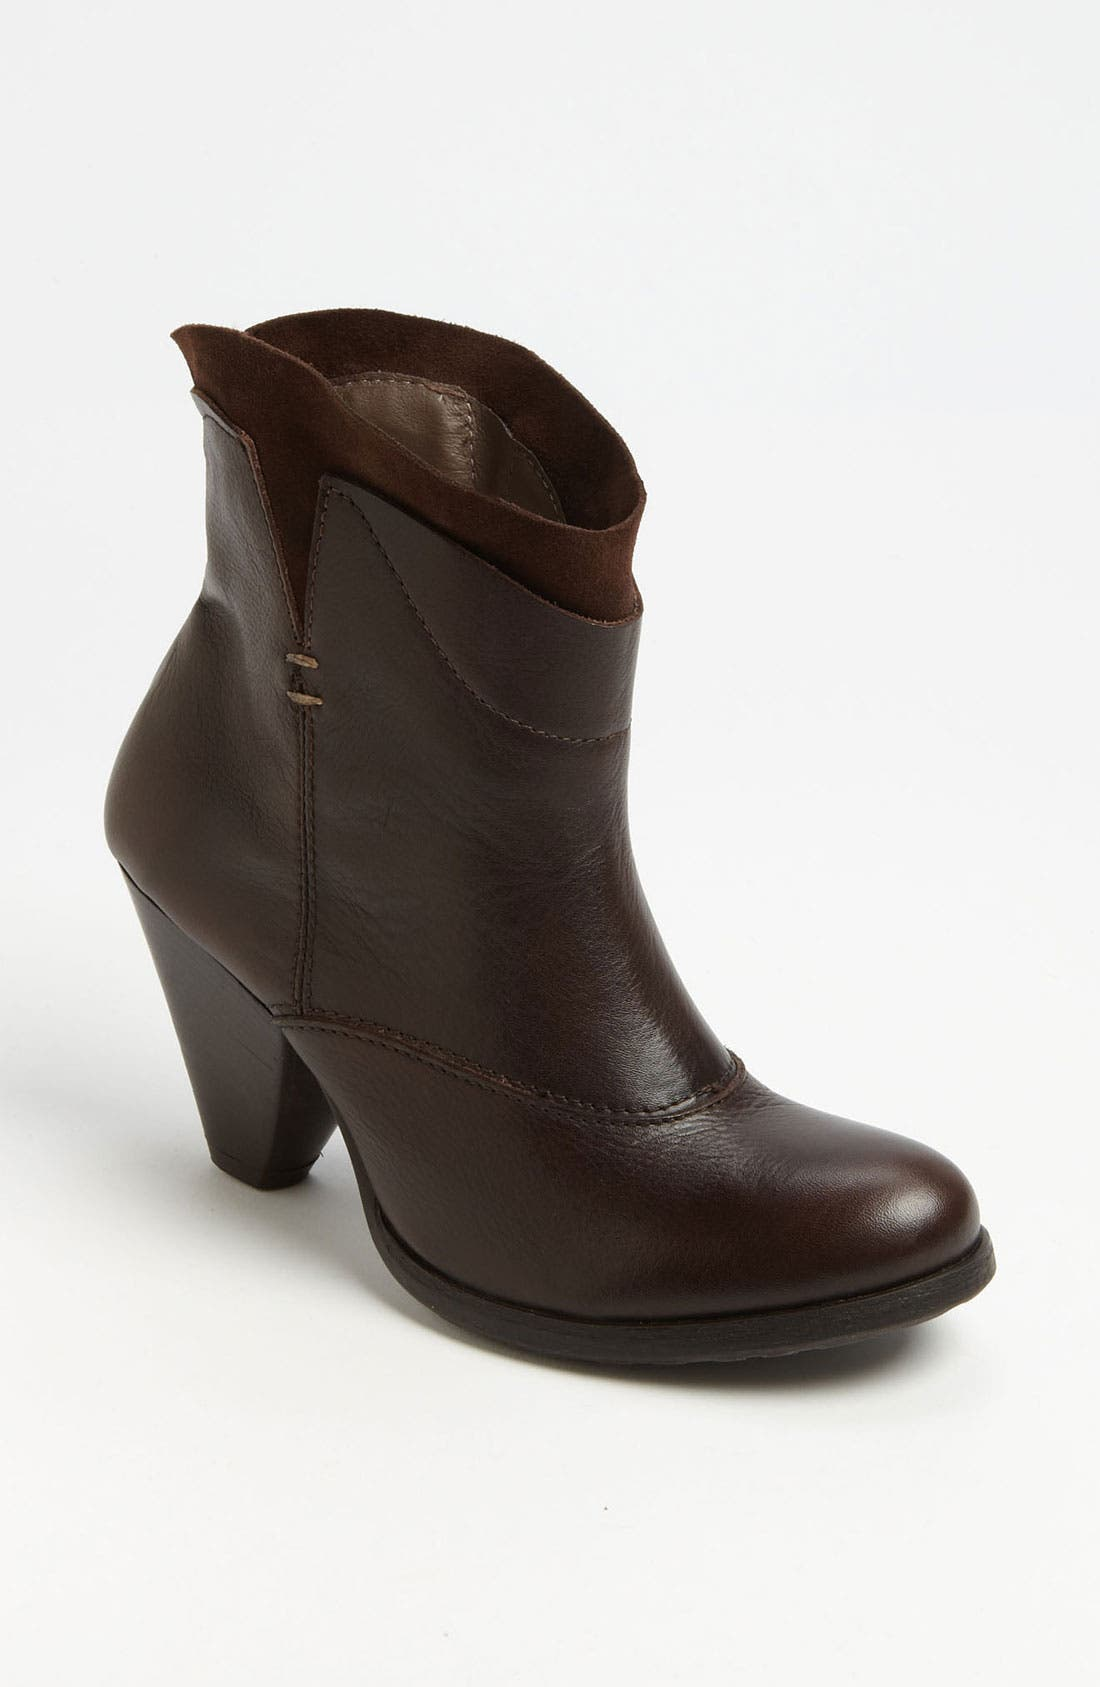 Alternate Image 1 Selected - Lili Mill Ankle Boot